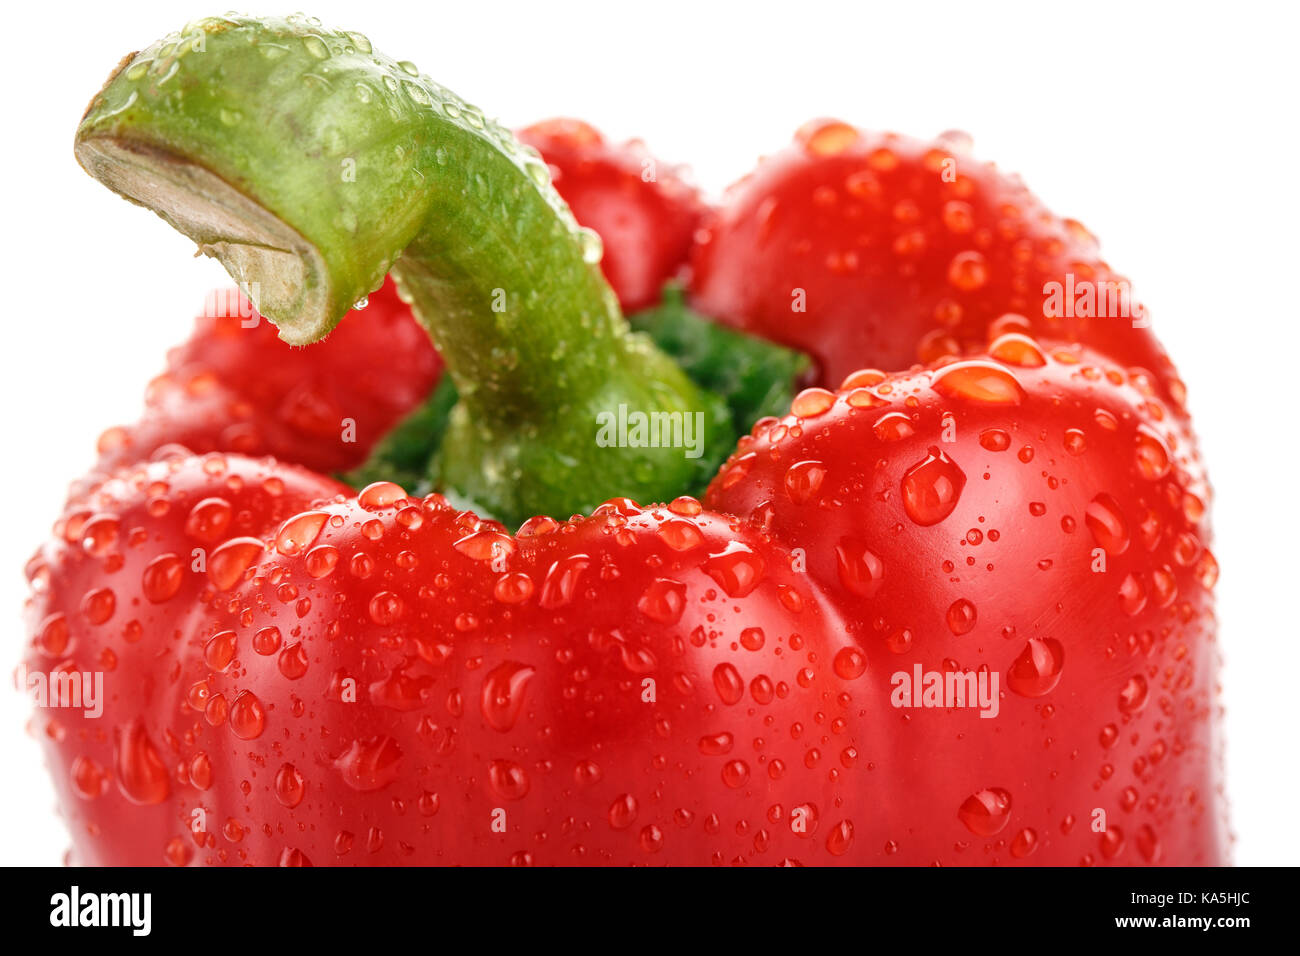 The head of ripe red pepper with drops of water. Stock Photo